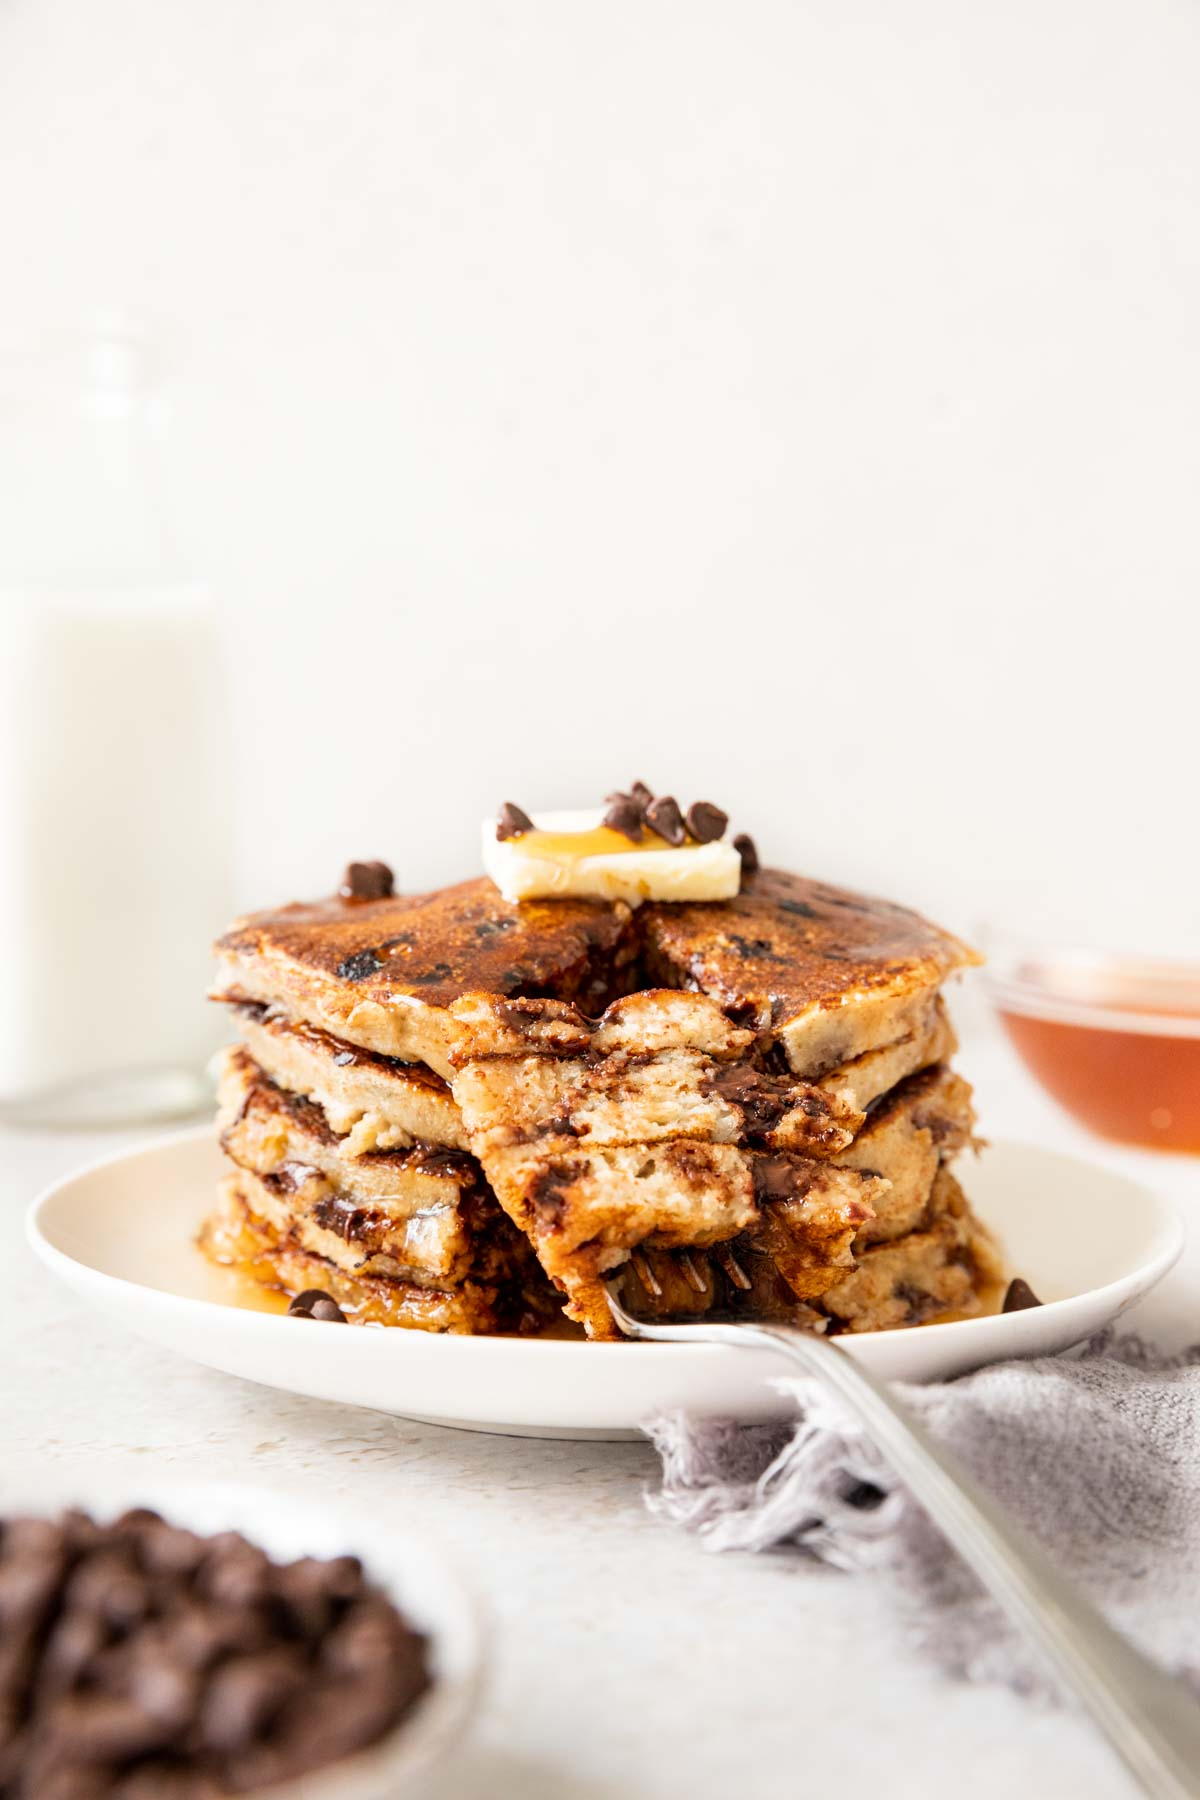 Whole Wheat Chocolate Chip Pancakes up close with butter on top and fork with bite